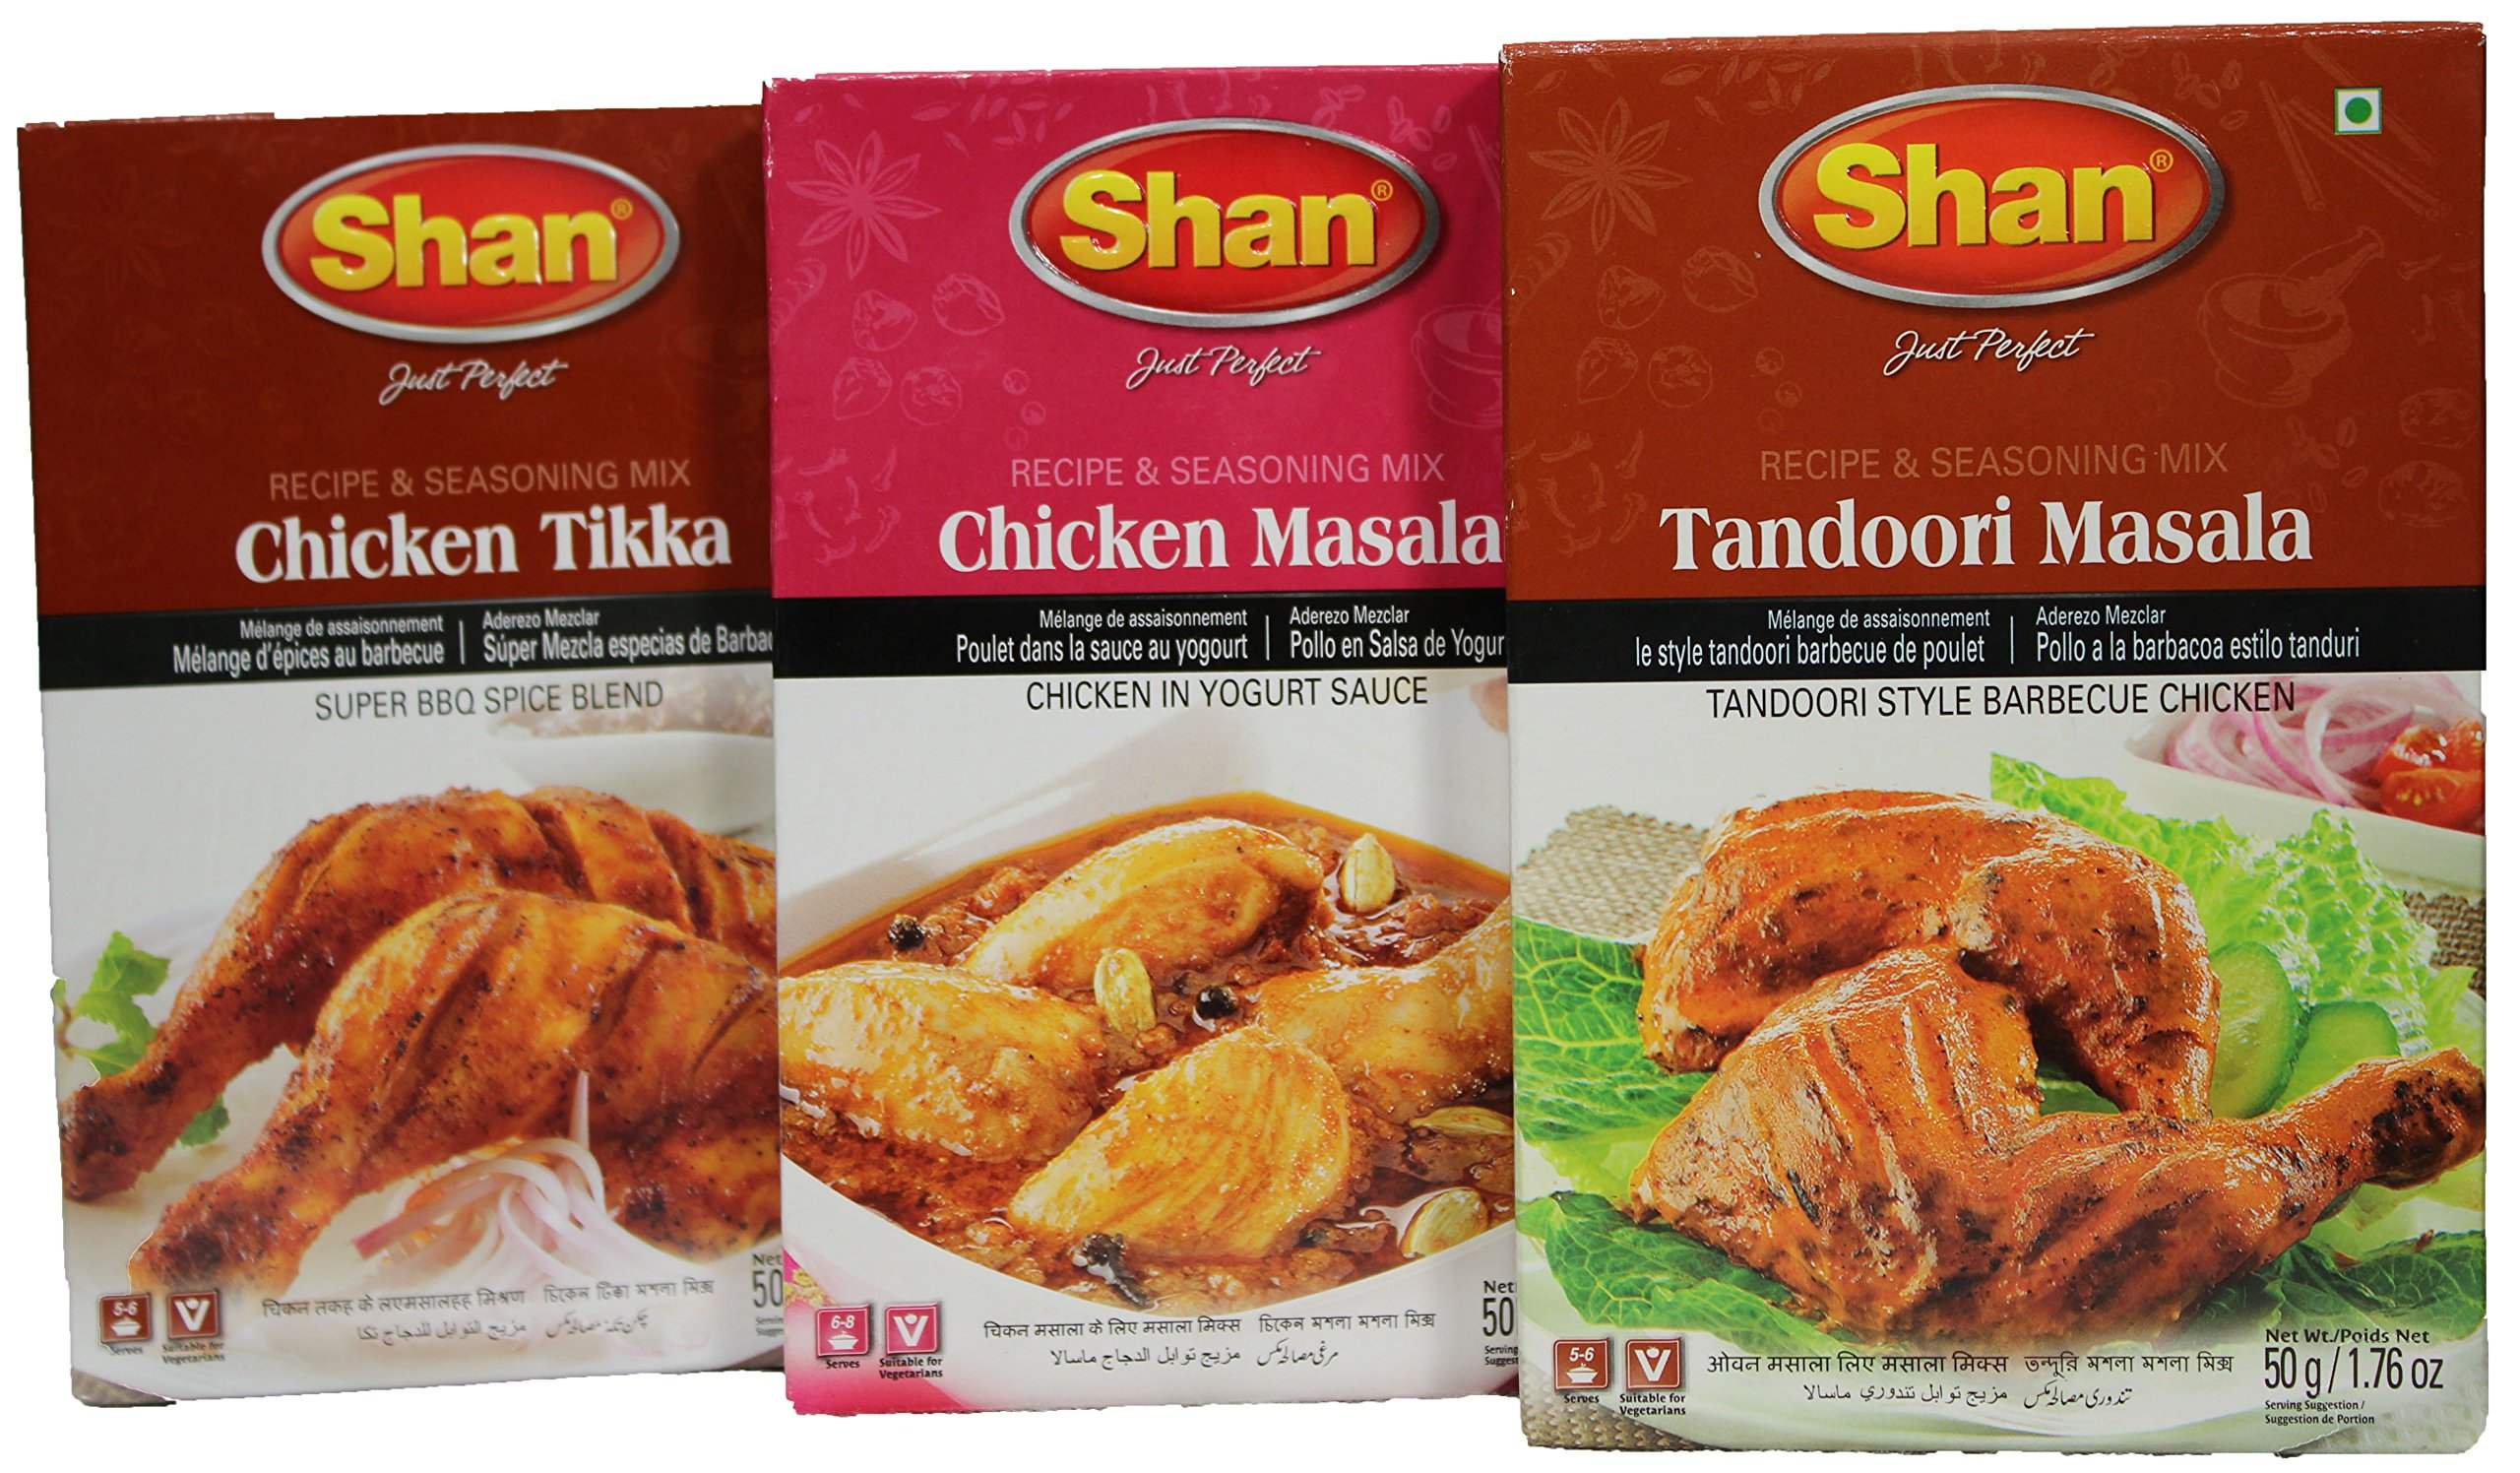 Amazon.com : Shan Foods Masala Chicken Value Pack (Tikka BBQ, Tandoori, Masala) Mix Spices- Meat Ingredients - Vegetable Dishes - Indian/Pakistani Bundle ...